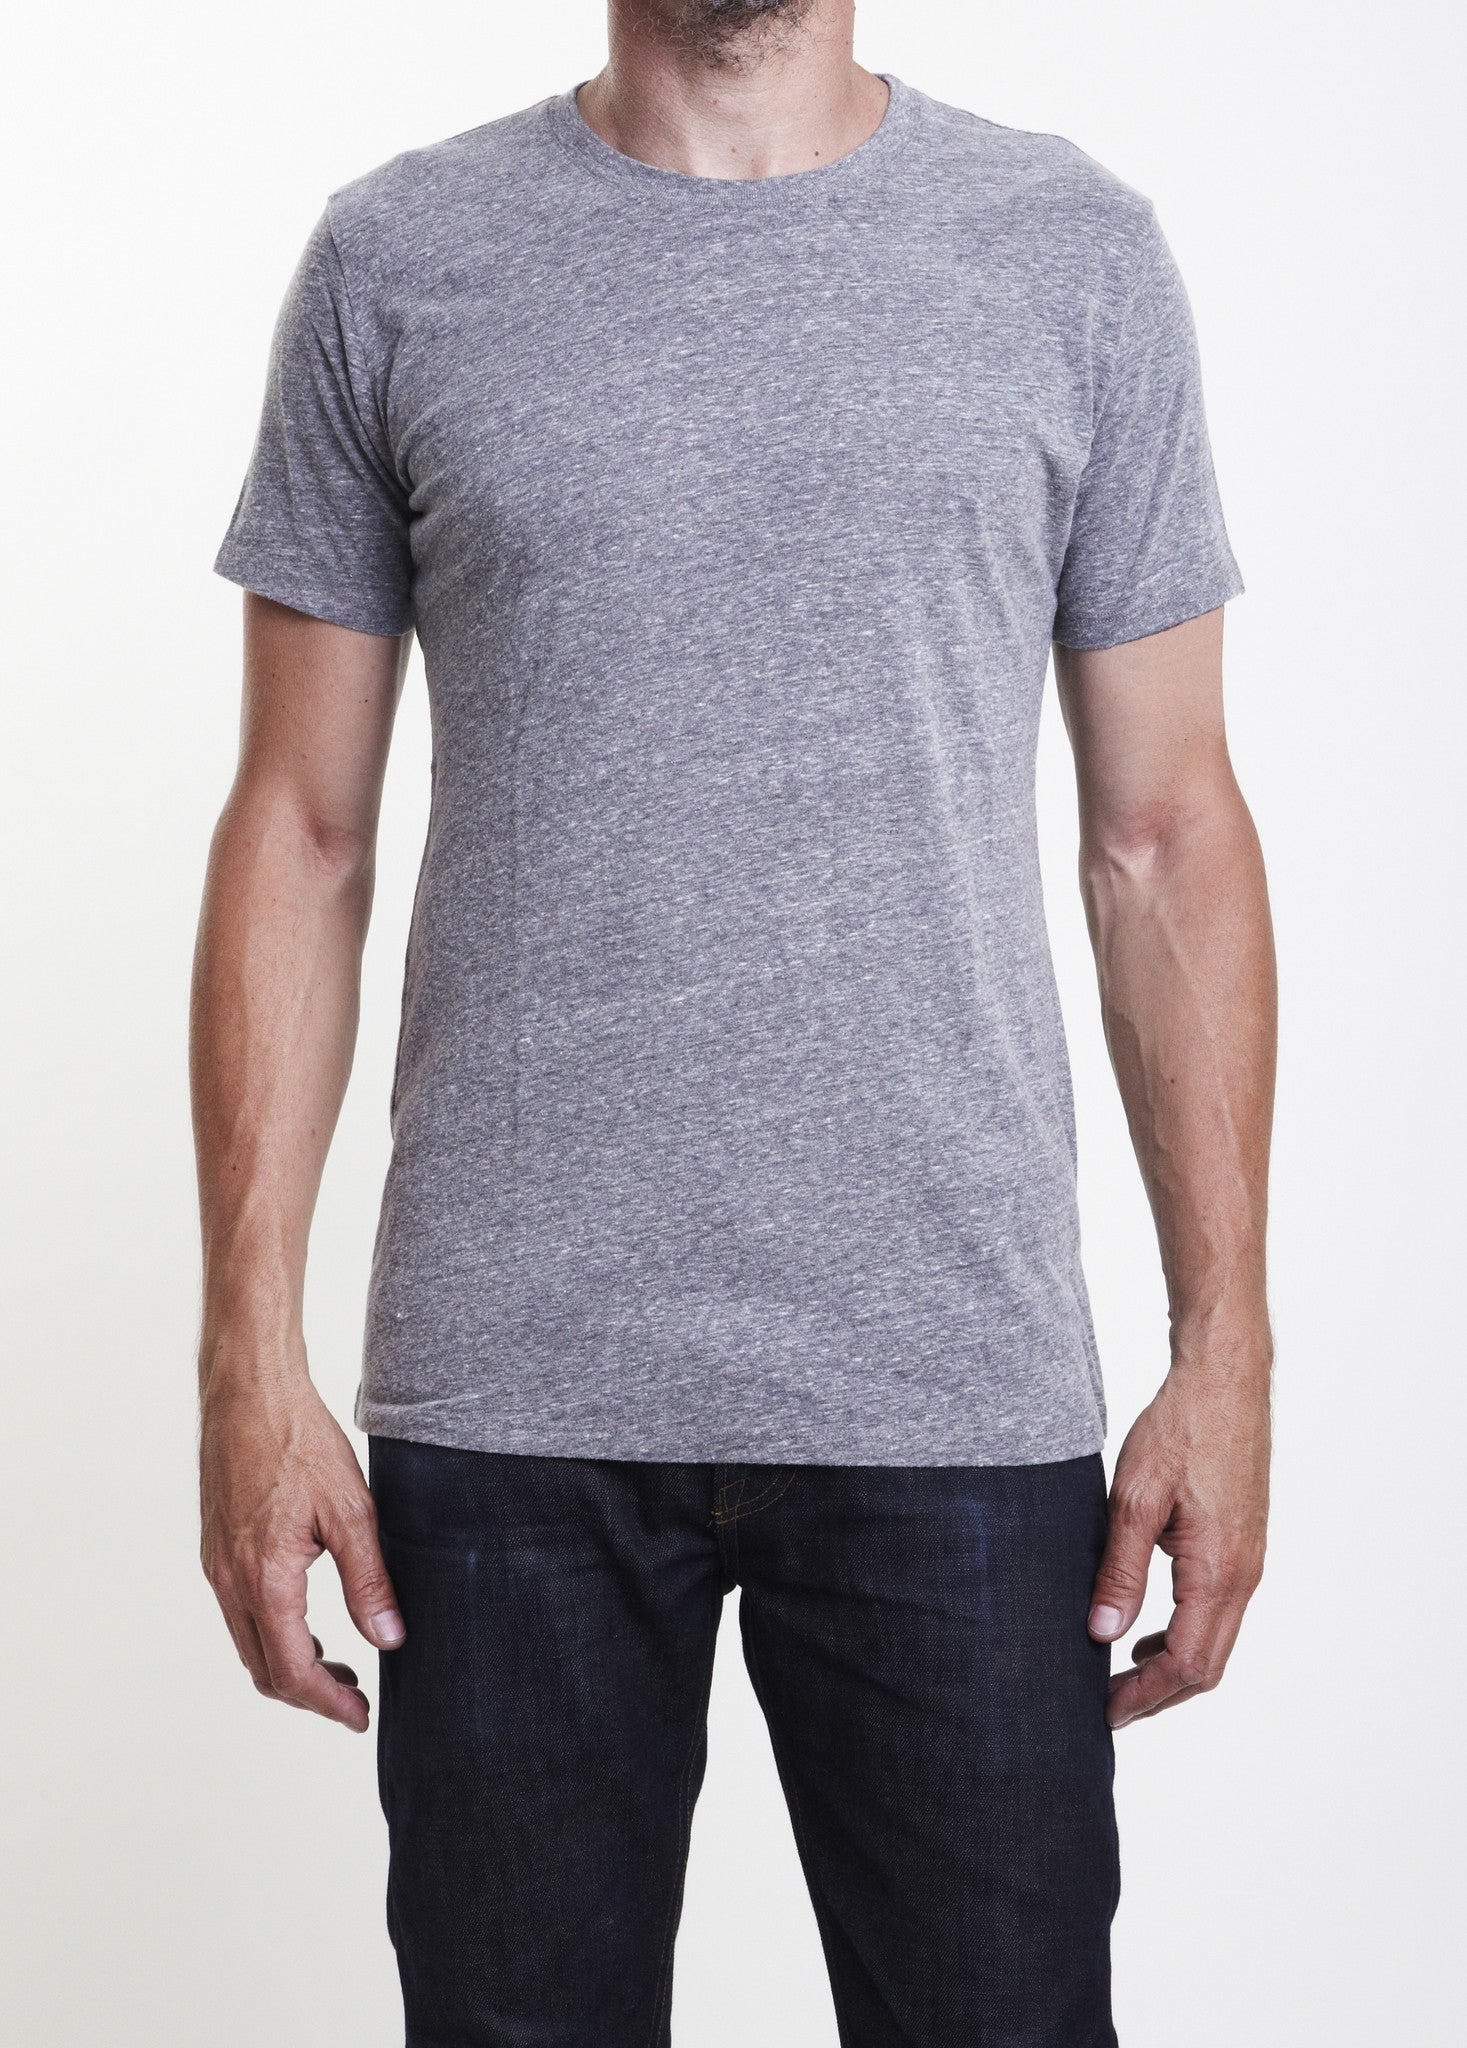 9ad837be Short Sleeve Organic Cotton Crew Neck T Shirt/Single Color 3-Pack - Brave  Star Selvage